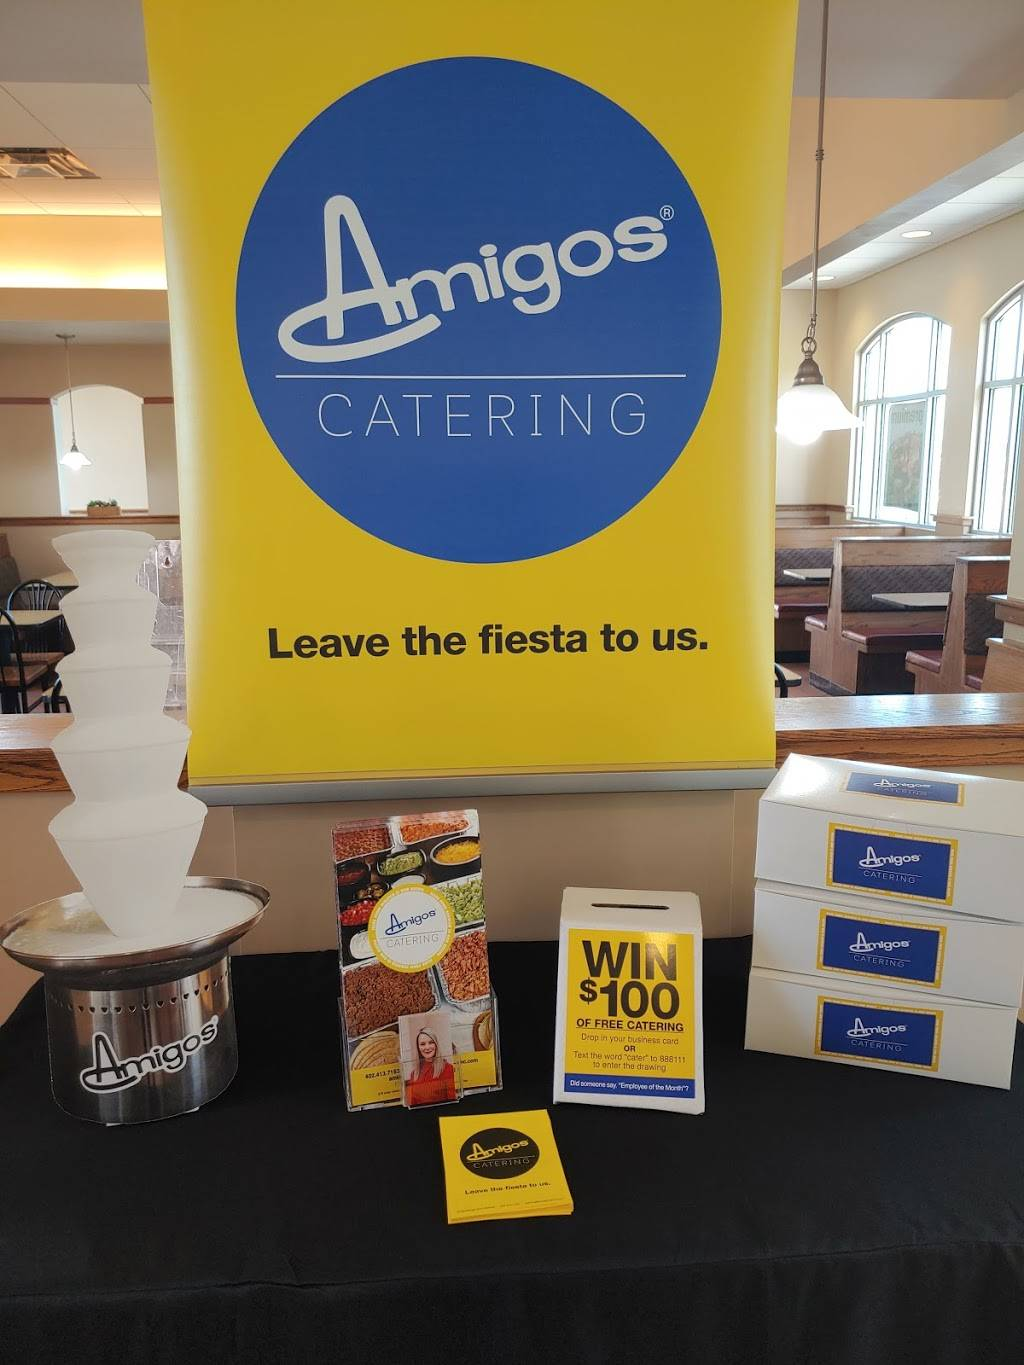 Amigos/Kings Classic - cafe  | Photo 4 of 9 | Address: 4200 S 14th St, Lincoln, NE 68502, USA | Phone: (402) 423-6794